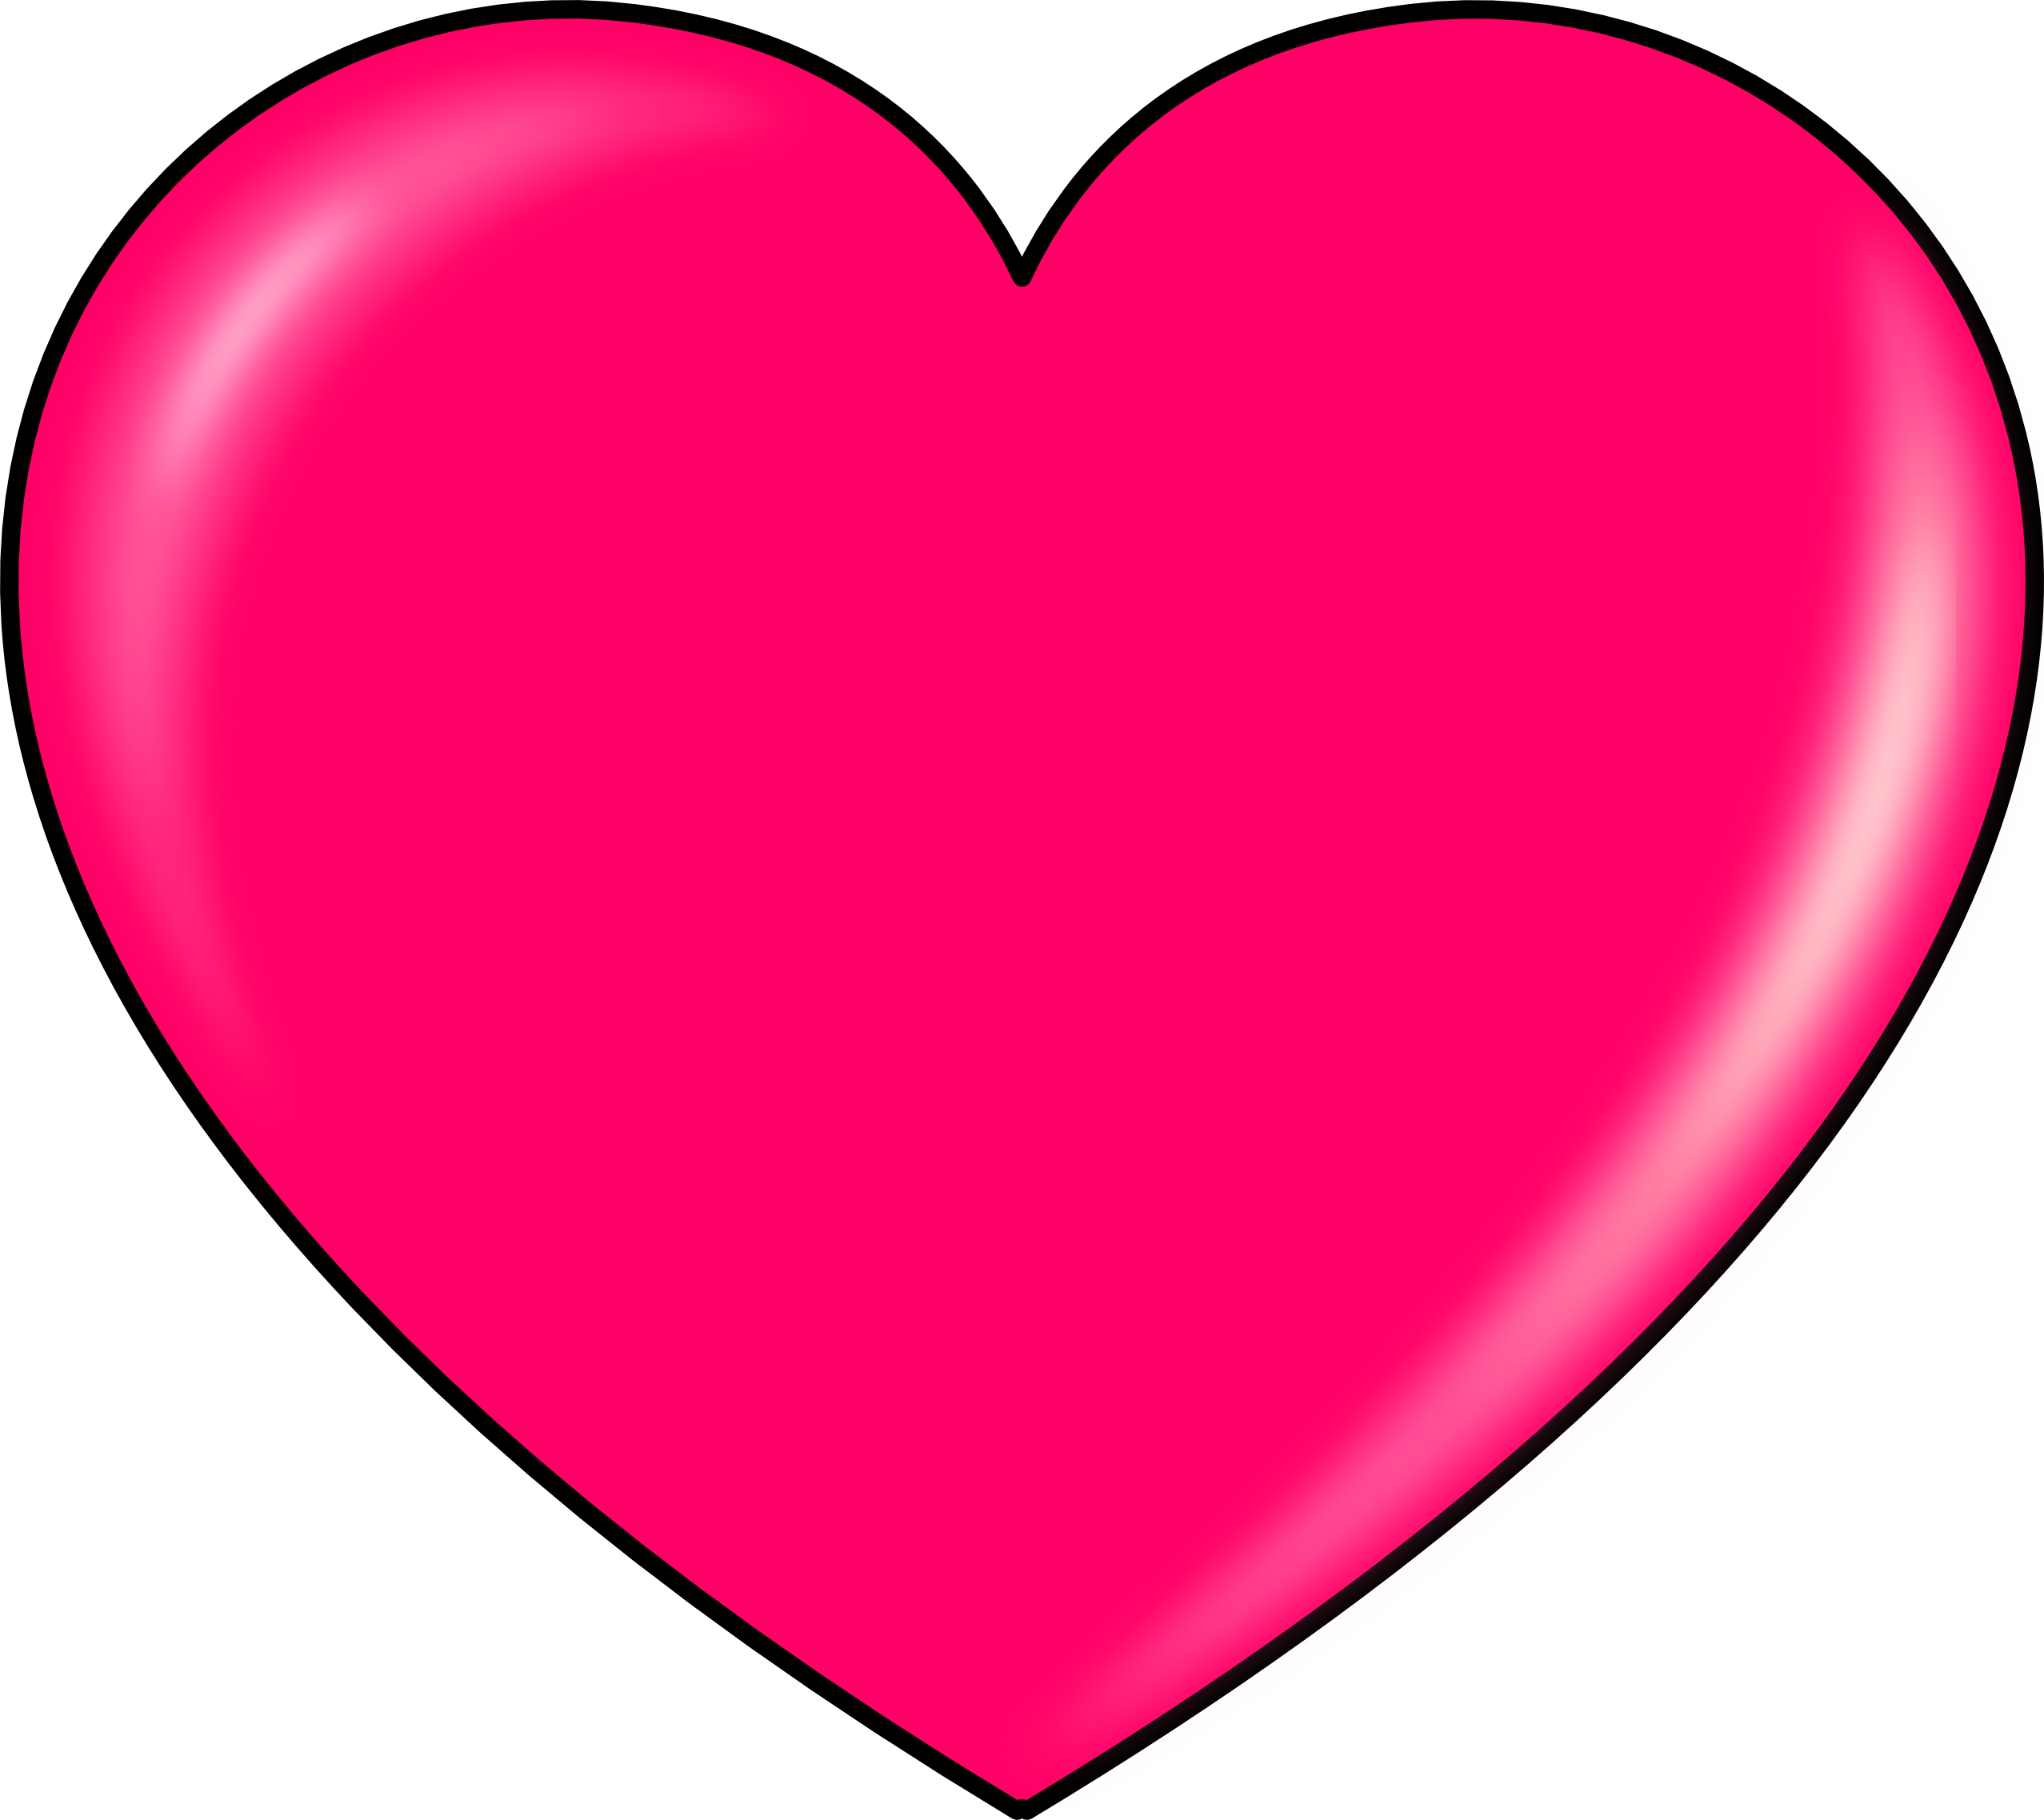 heart images